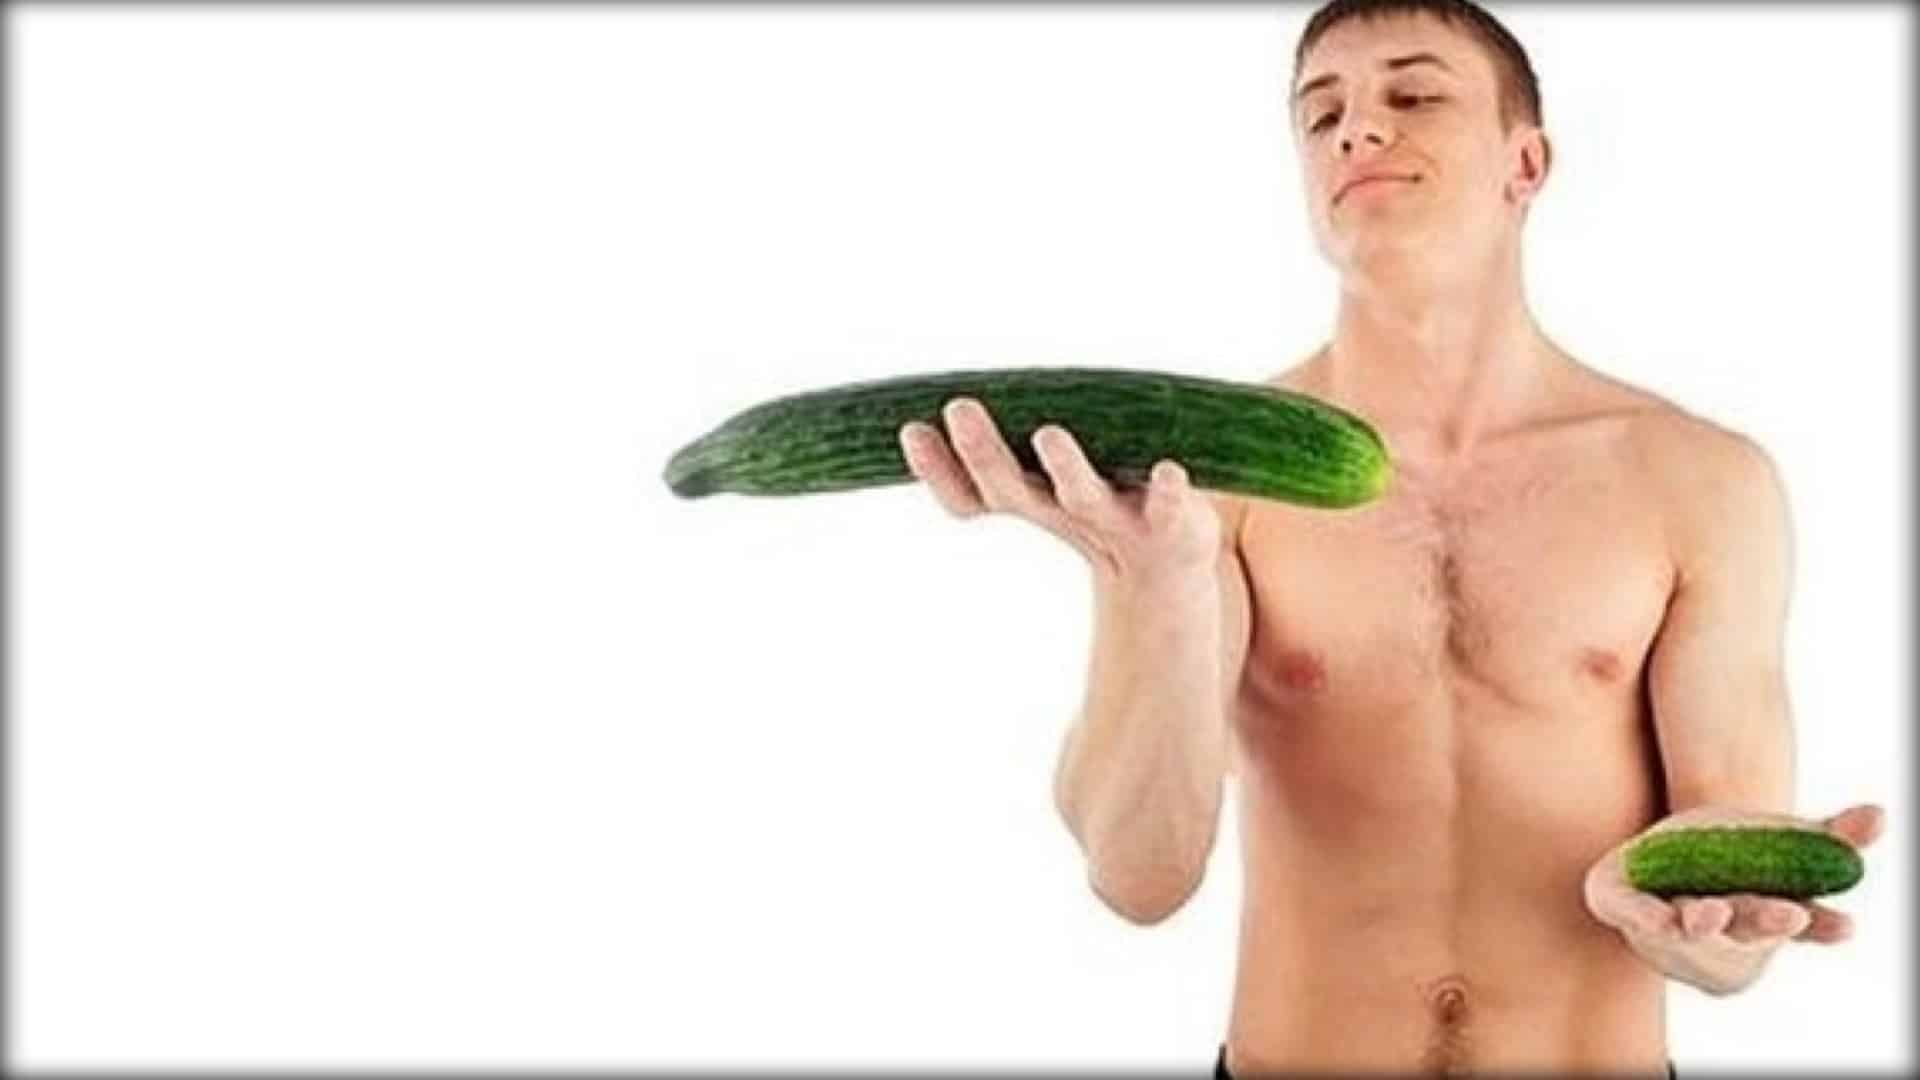 Naked man viewed from the waist up holding a small cucumber in one hand and a large cucumber in the other. The large cucumber is held higher than the small one